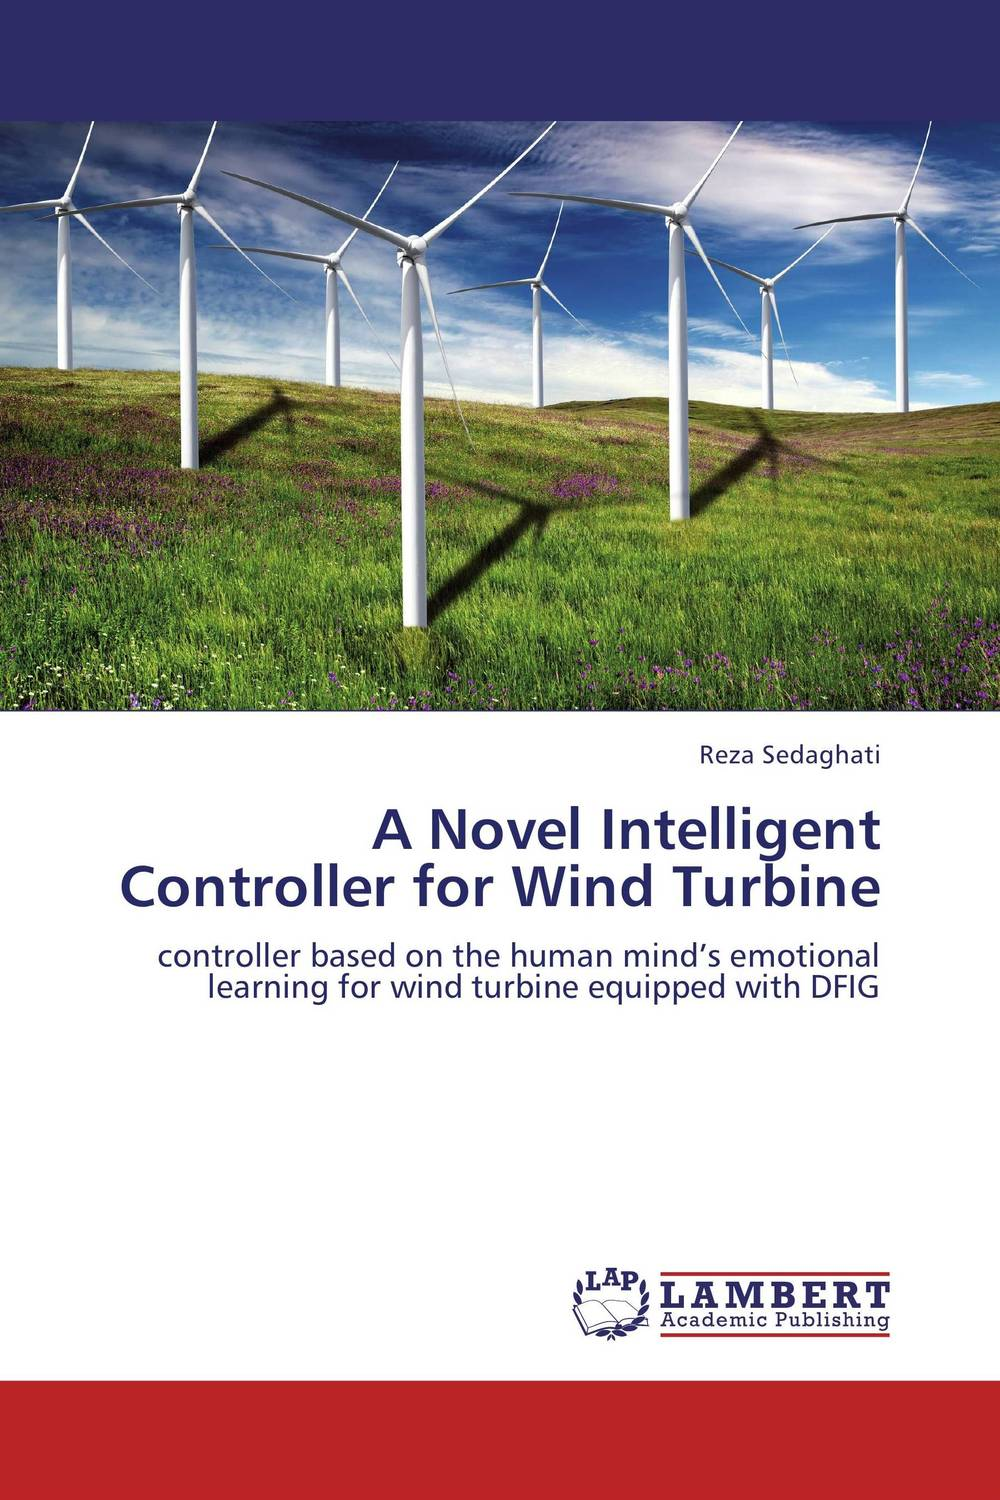 A Novel Intelligent Controller for Wind Turbine ароматизатор aroma wind 002 a